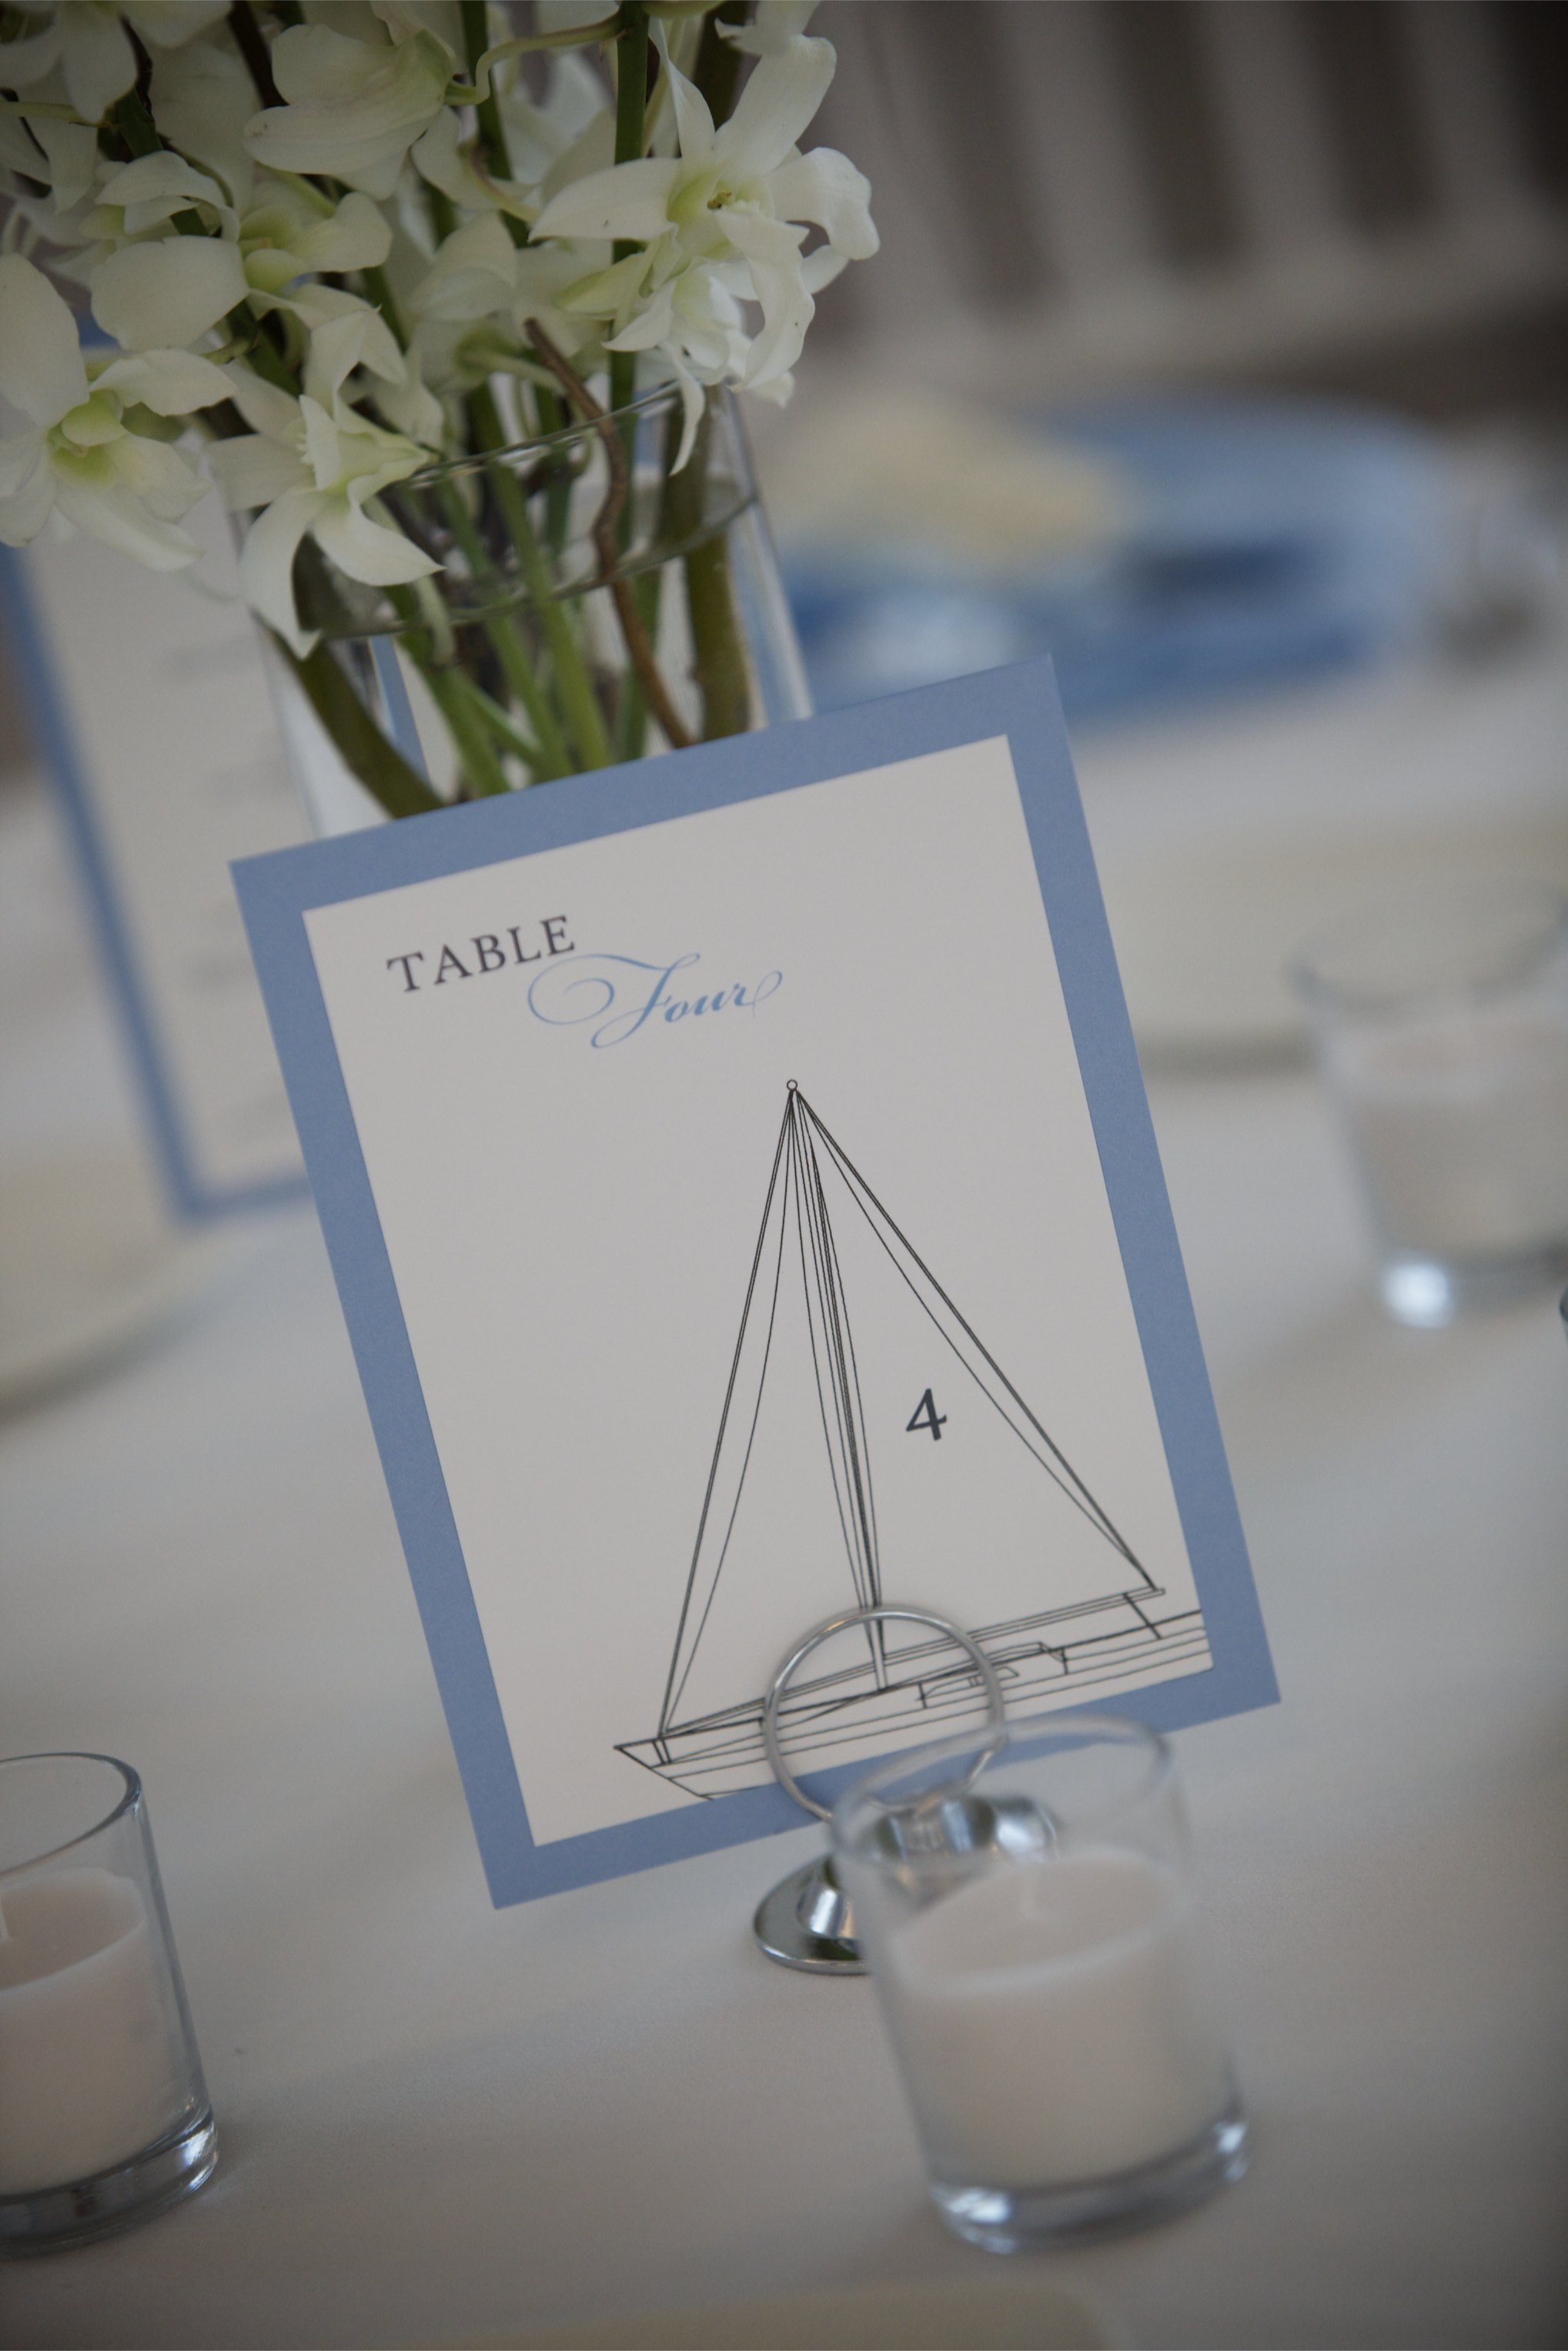 Stationery, white, blue, black, Invitations, Table Numbers, Table, And, Theme, Card, Bridge, Boat, Katlem design invitations, Belle, Mer